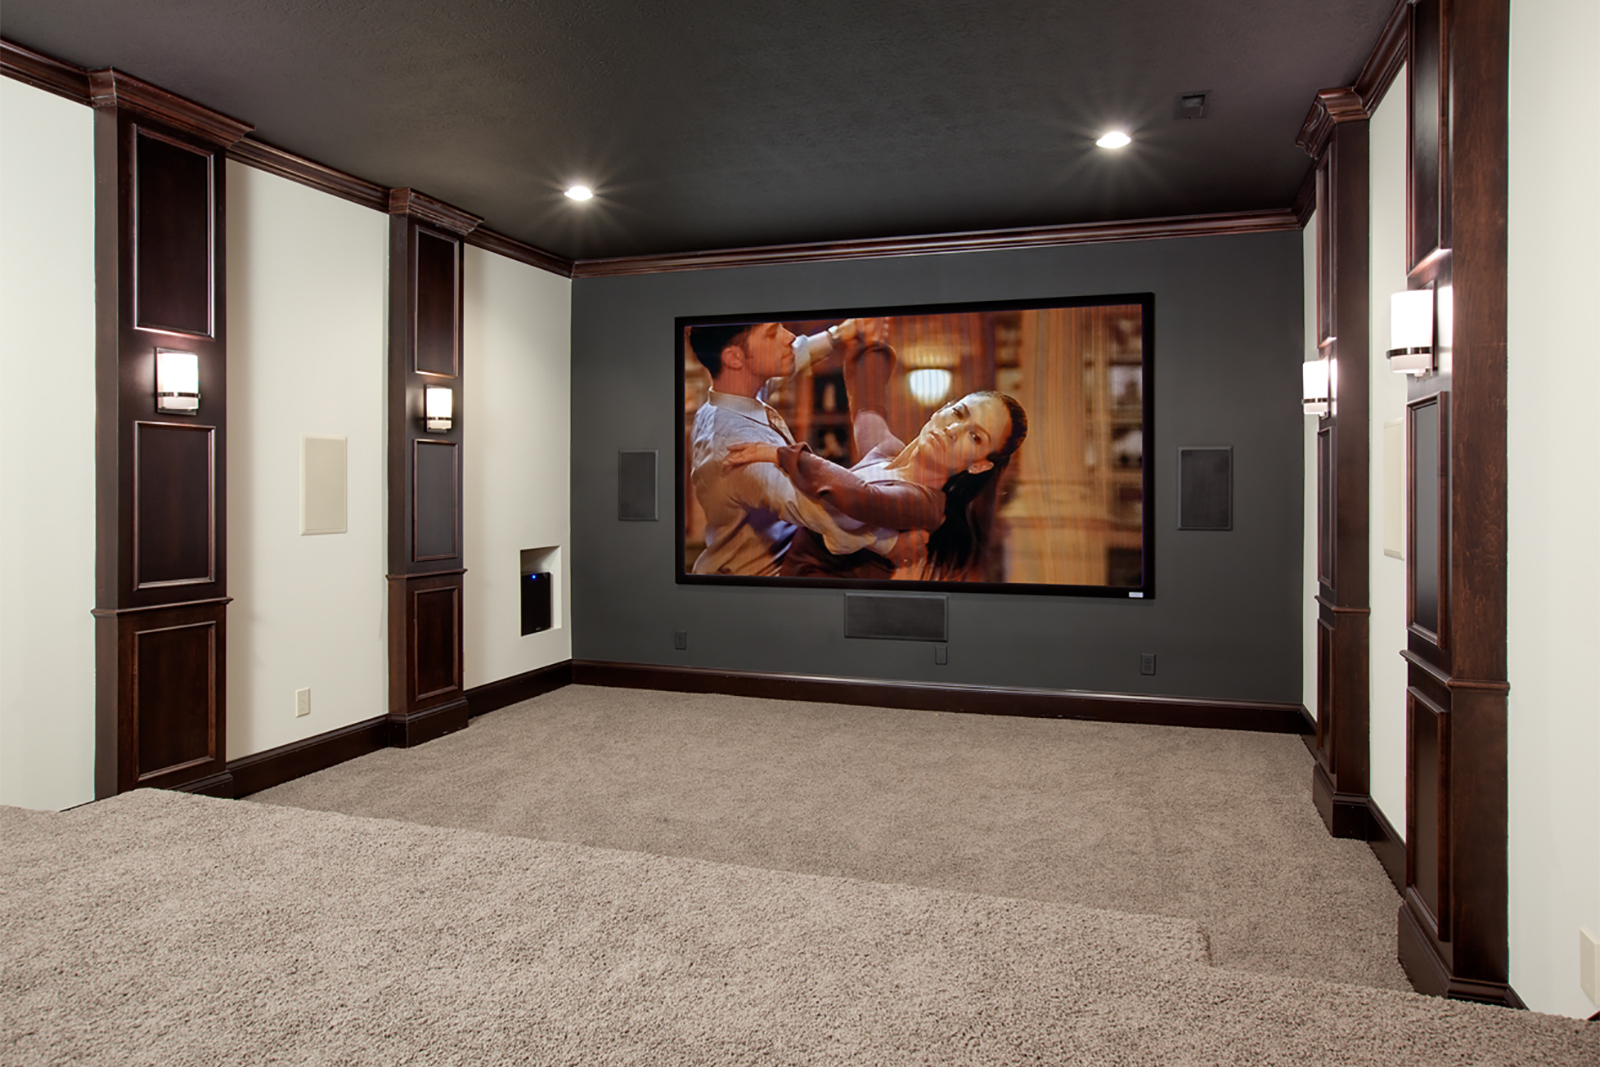 A bonus room idea that transforms space into a theater room.